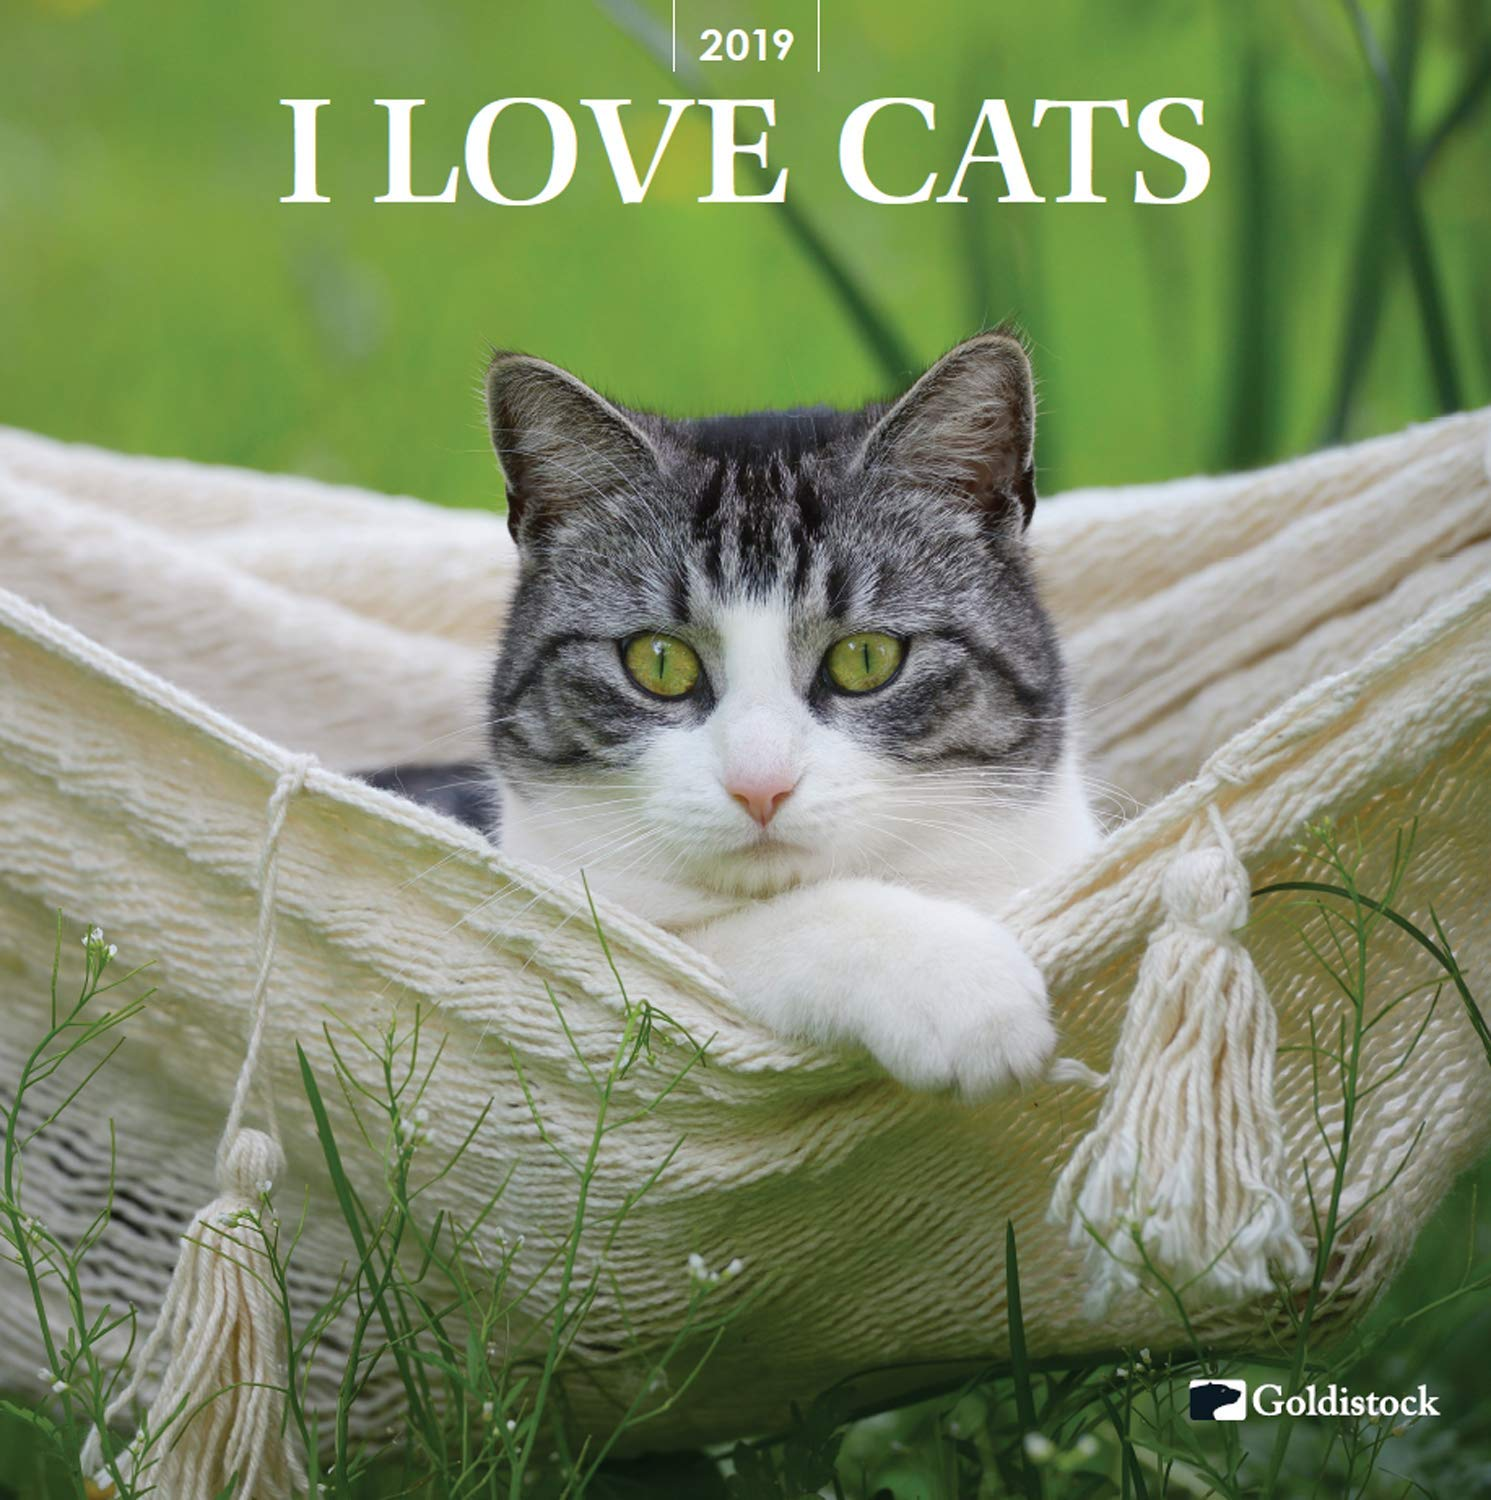 Goldistock -''Cat Lovers'' Eco-Friendly 2019 Large Wall Calendar - 12'' x 24'' (Open) - Thick & Sturdy Paper - Purrfect for Cat Lovers